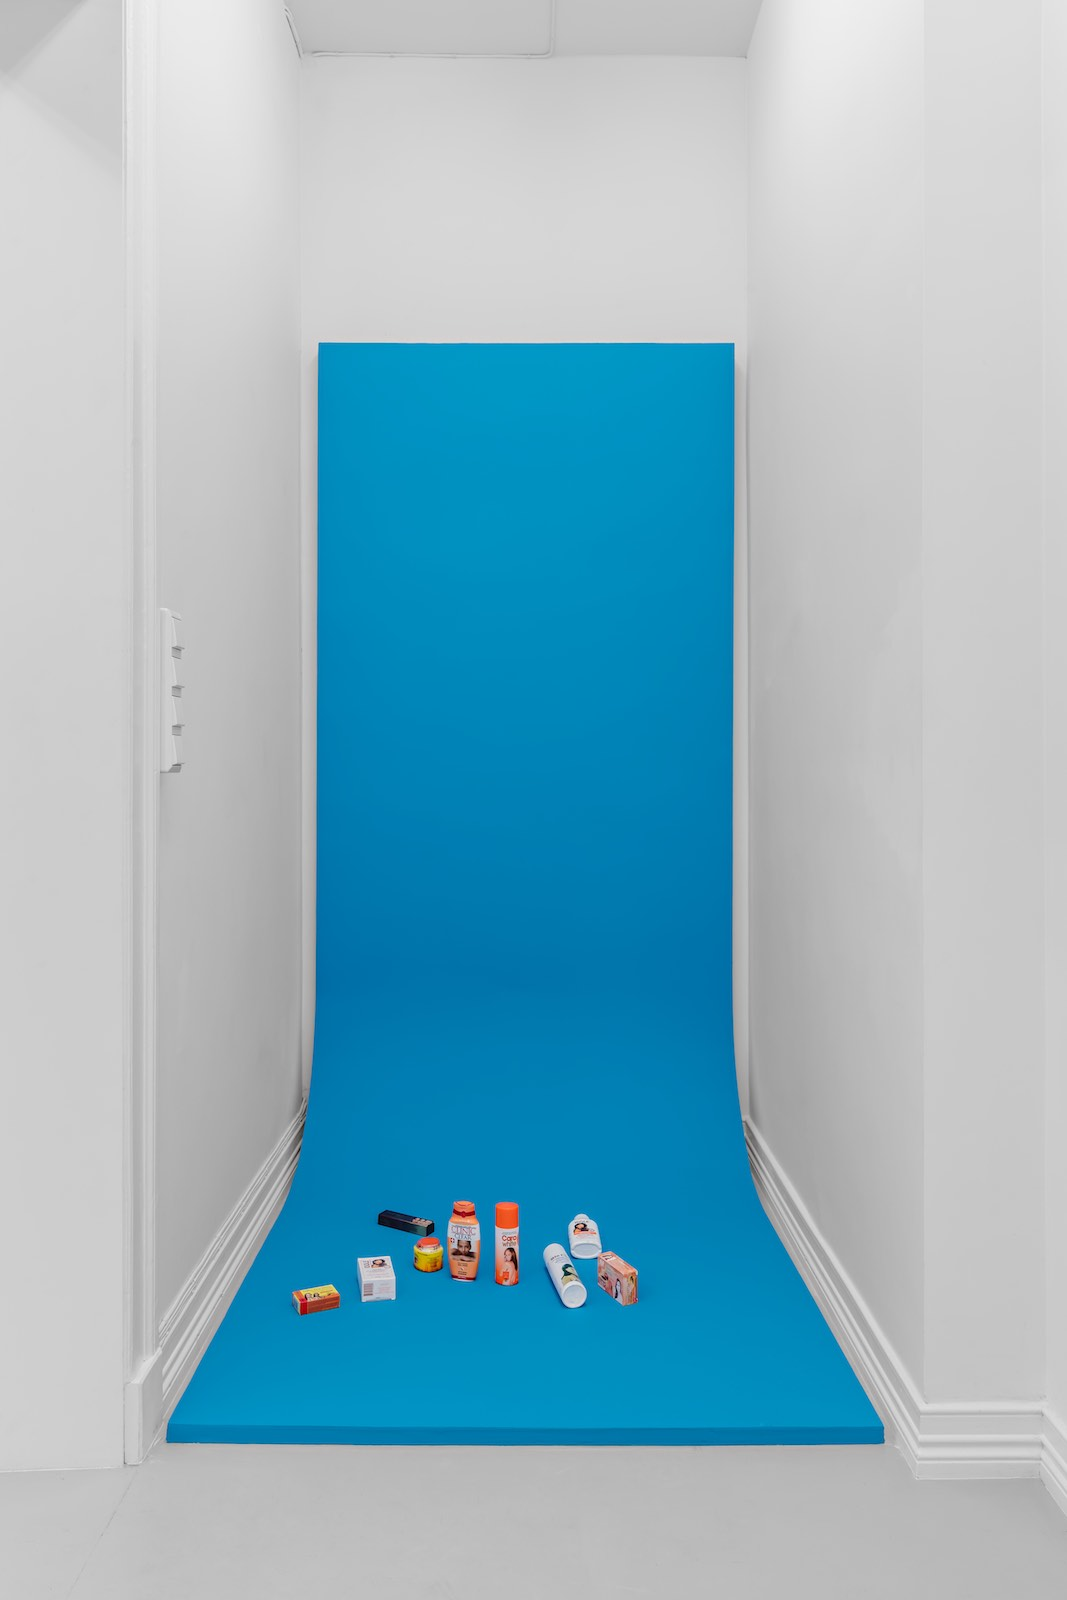 Chroma key, 2017, skin bleaching products, paint, wood, dimensions variable, Unique